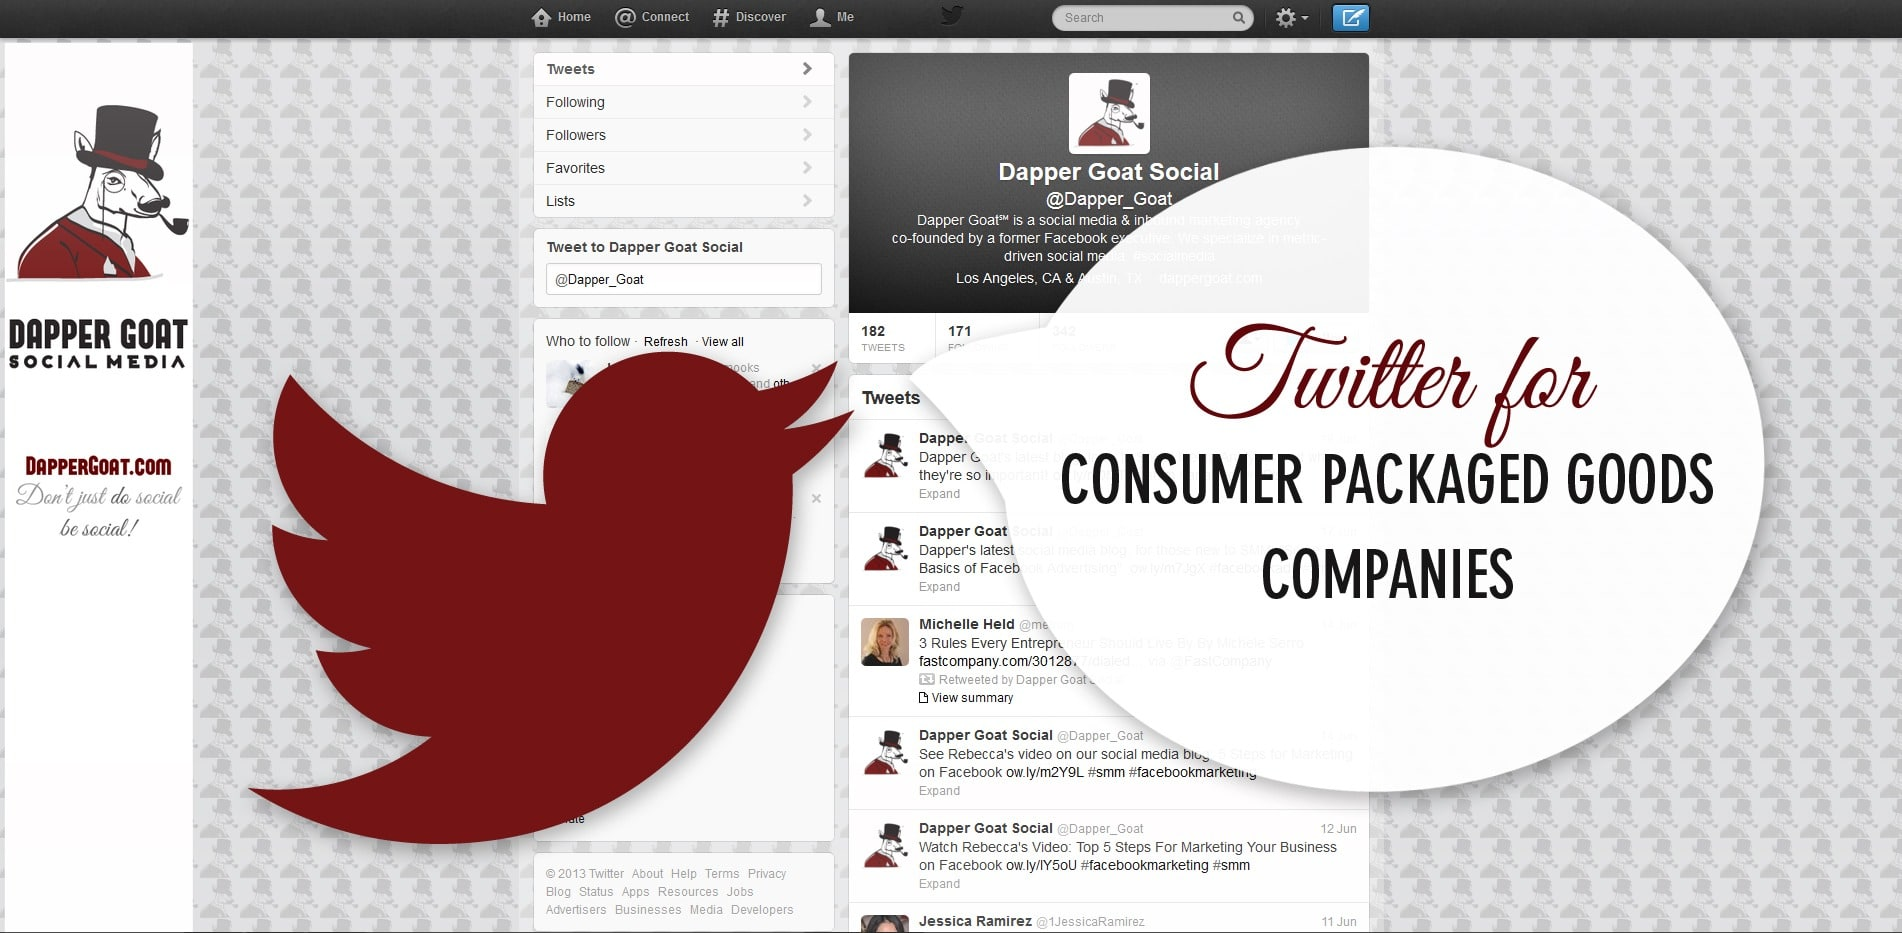 Twitter for Consumer Packaged Goods